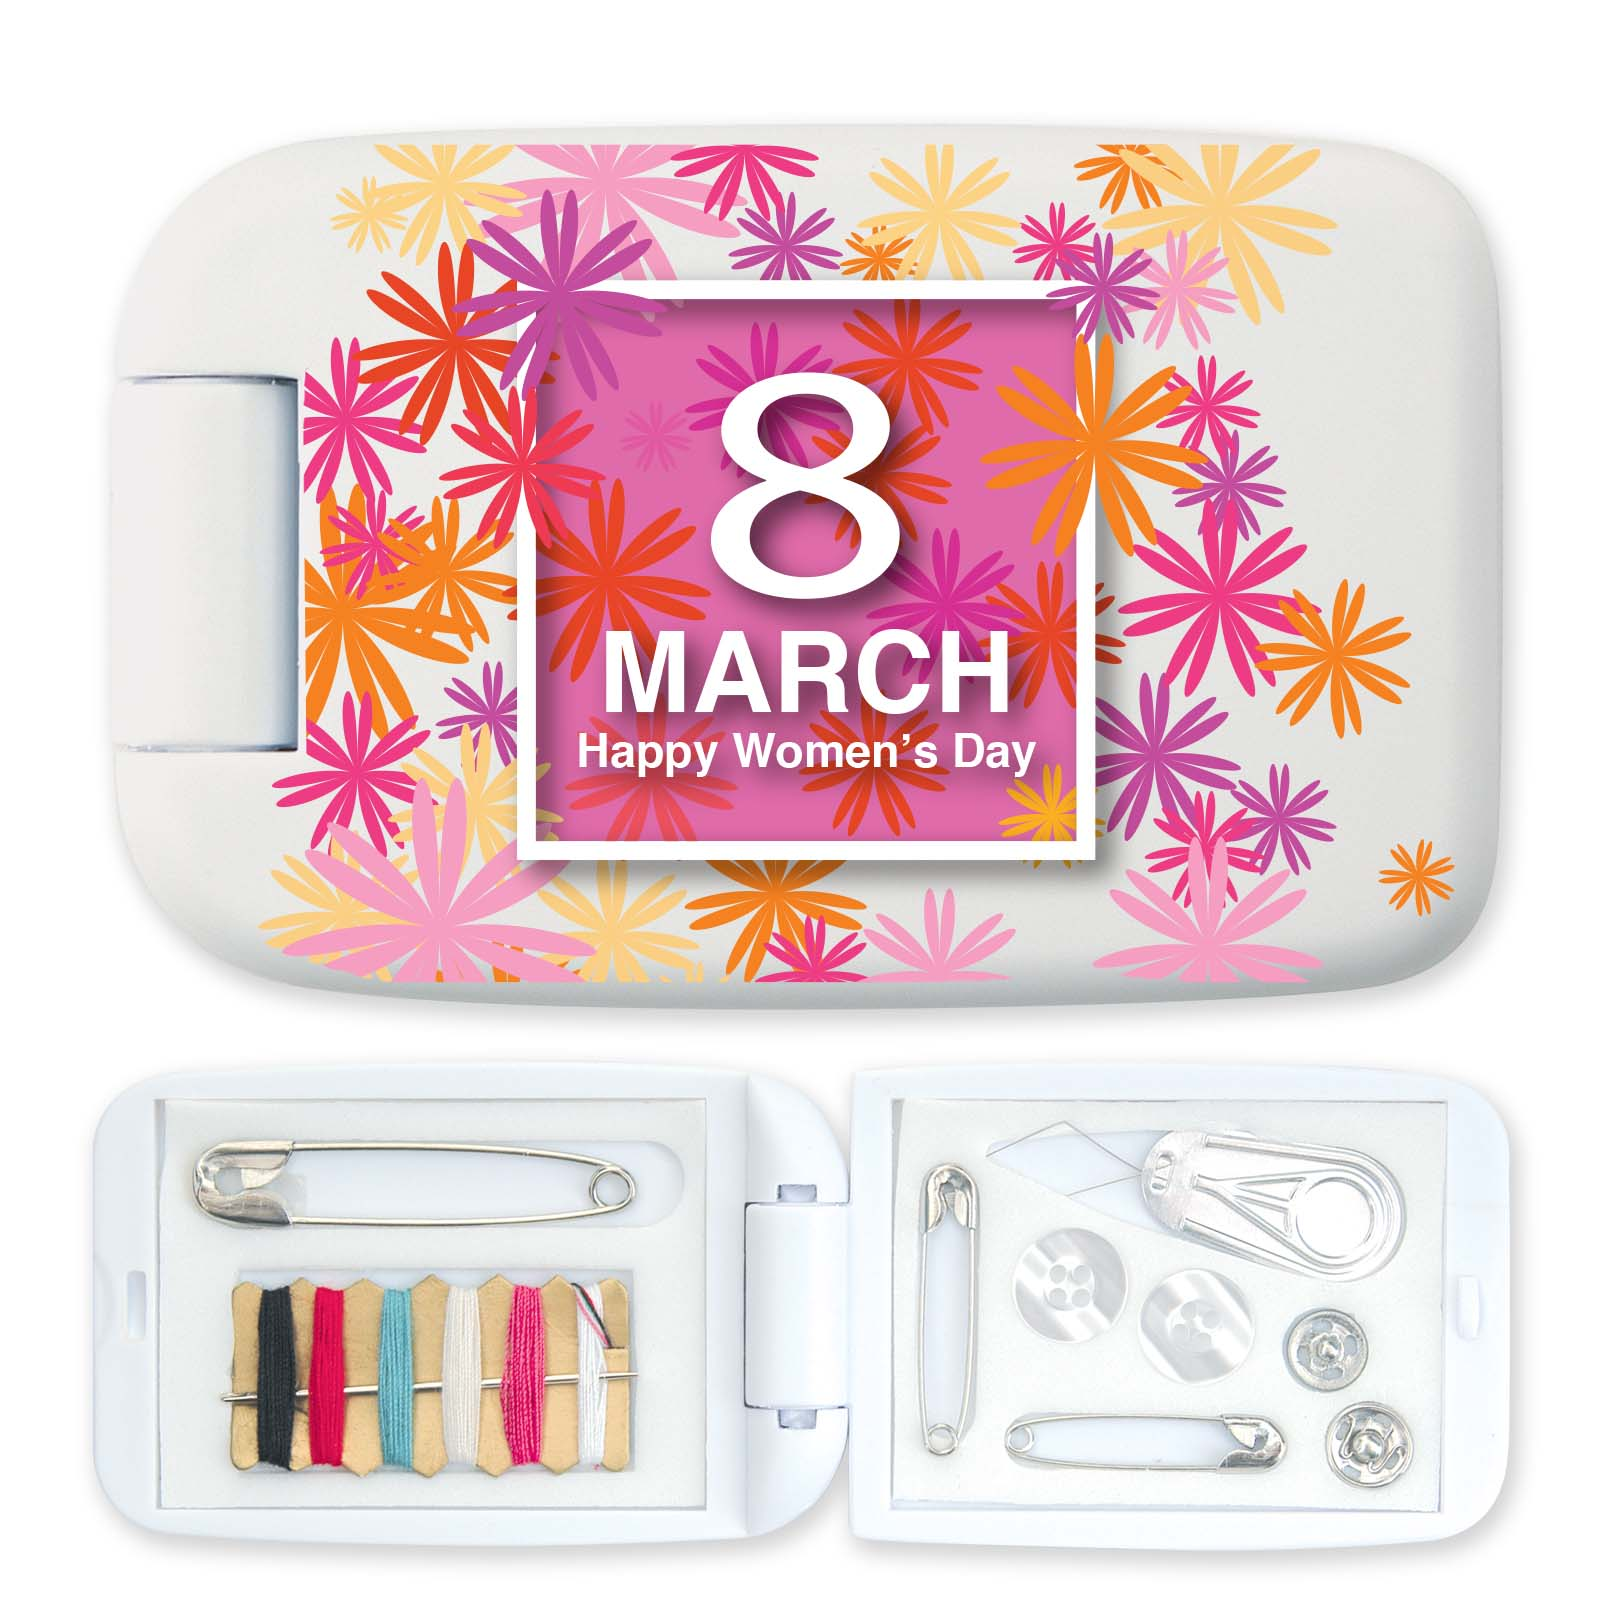 Stitch-In-Time Sewing Kit - Includes a 1 colour printed logo